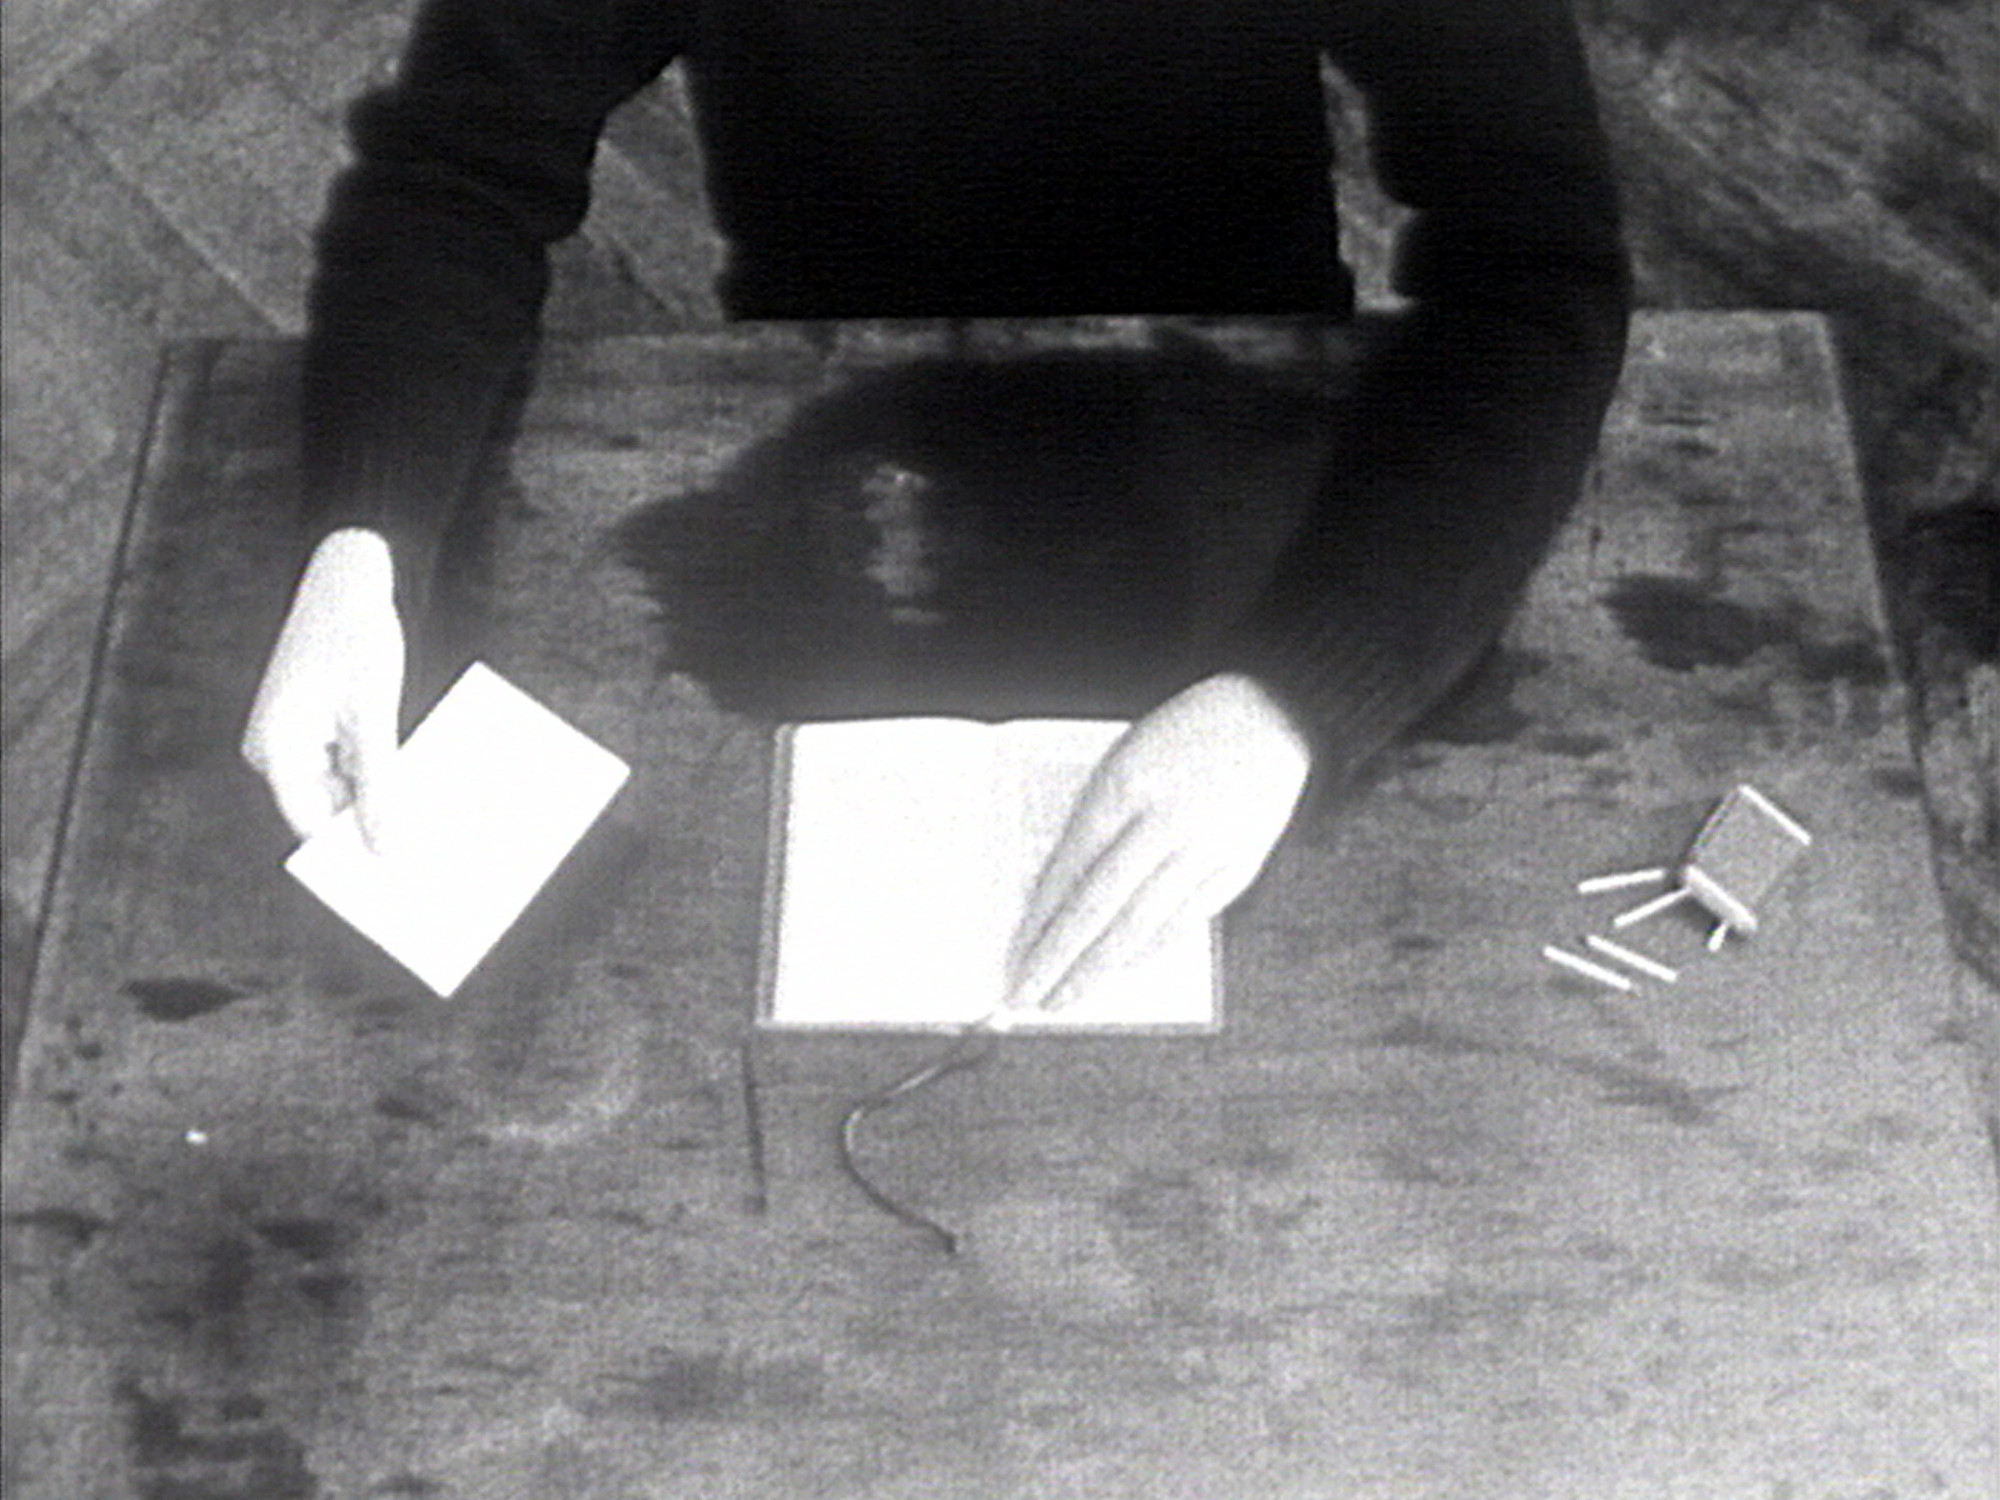 Harun Farocki. The Words of the Chairman. 1967